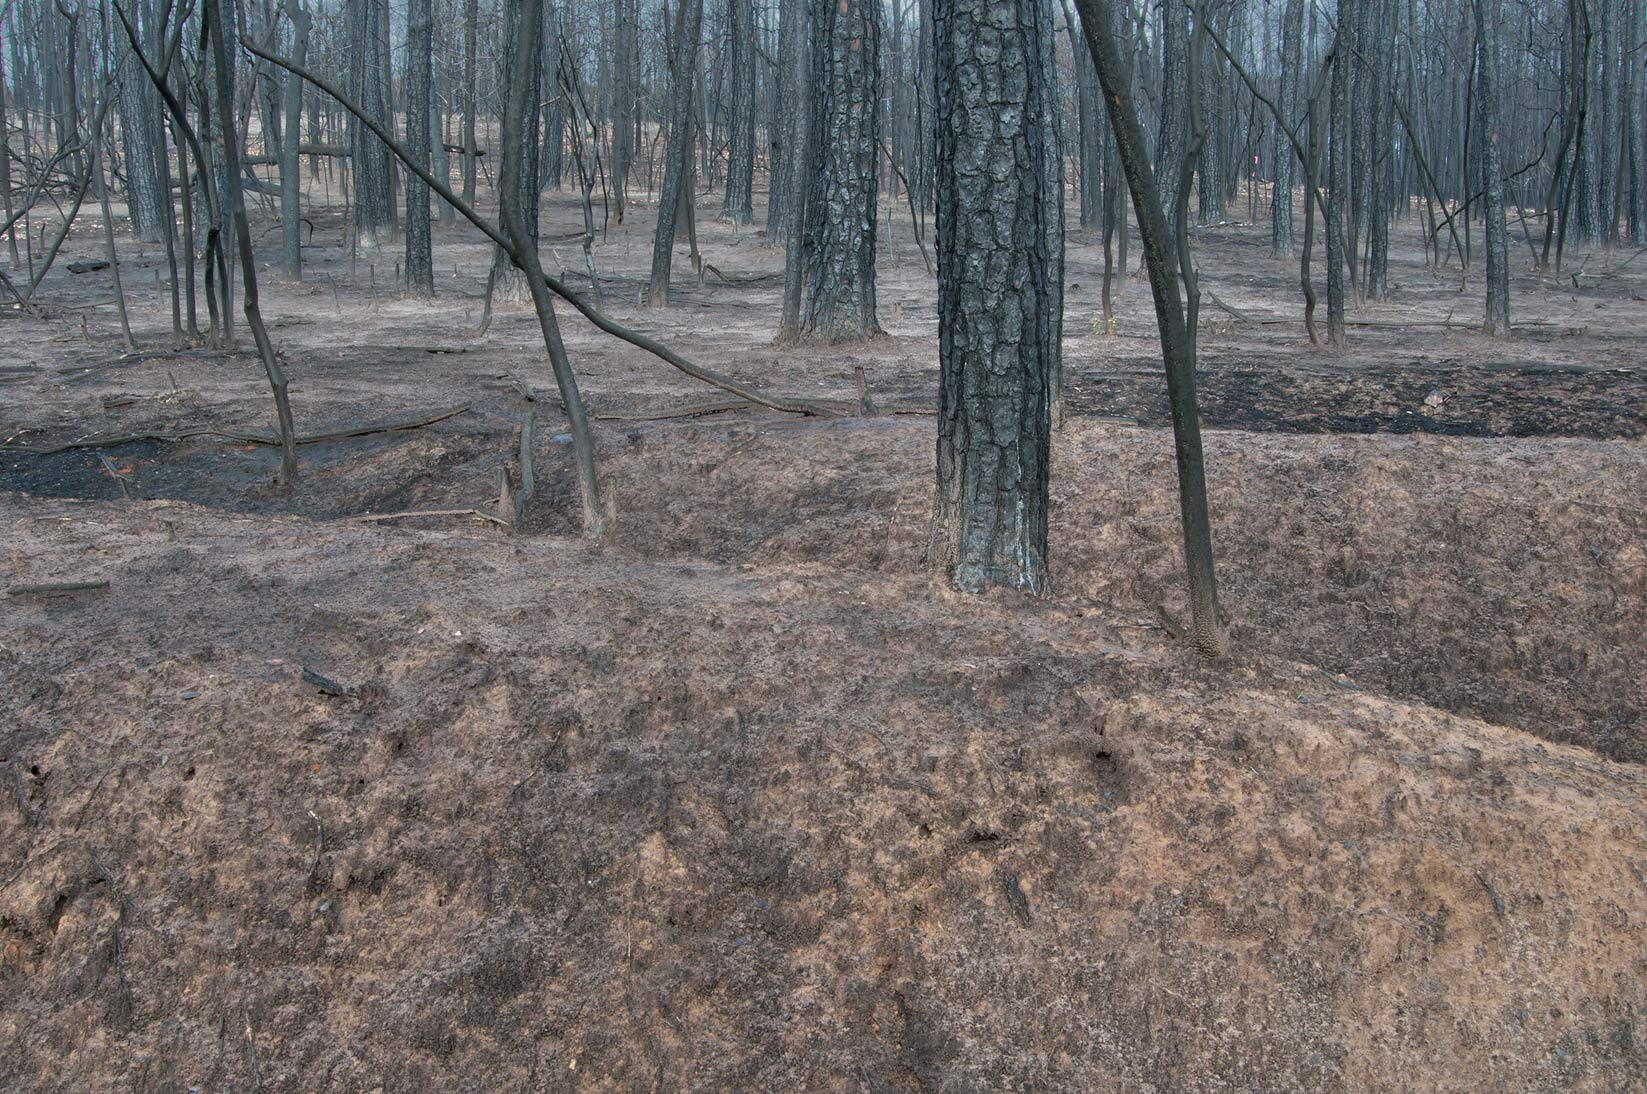 Pine forest cleaned by fire in Bastrop State Park. Bastrop, Texas